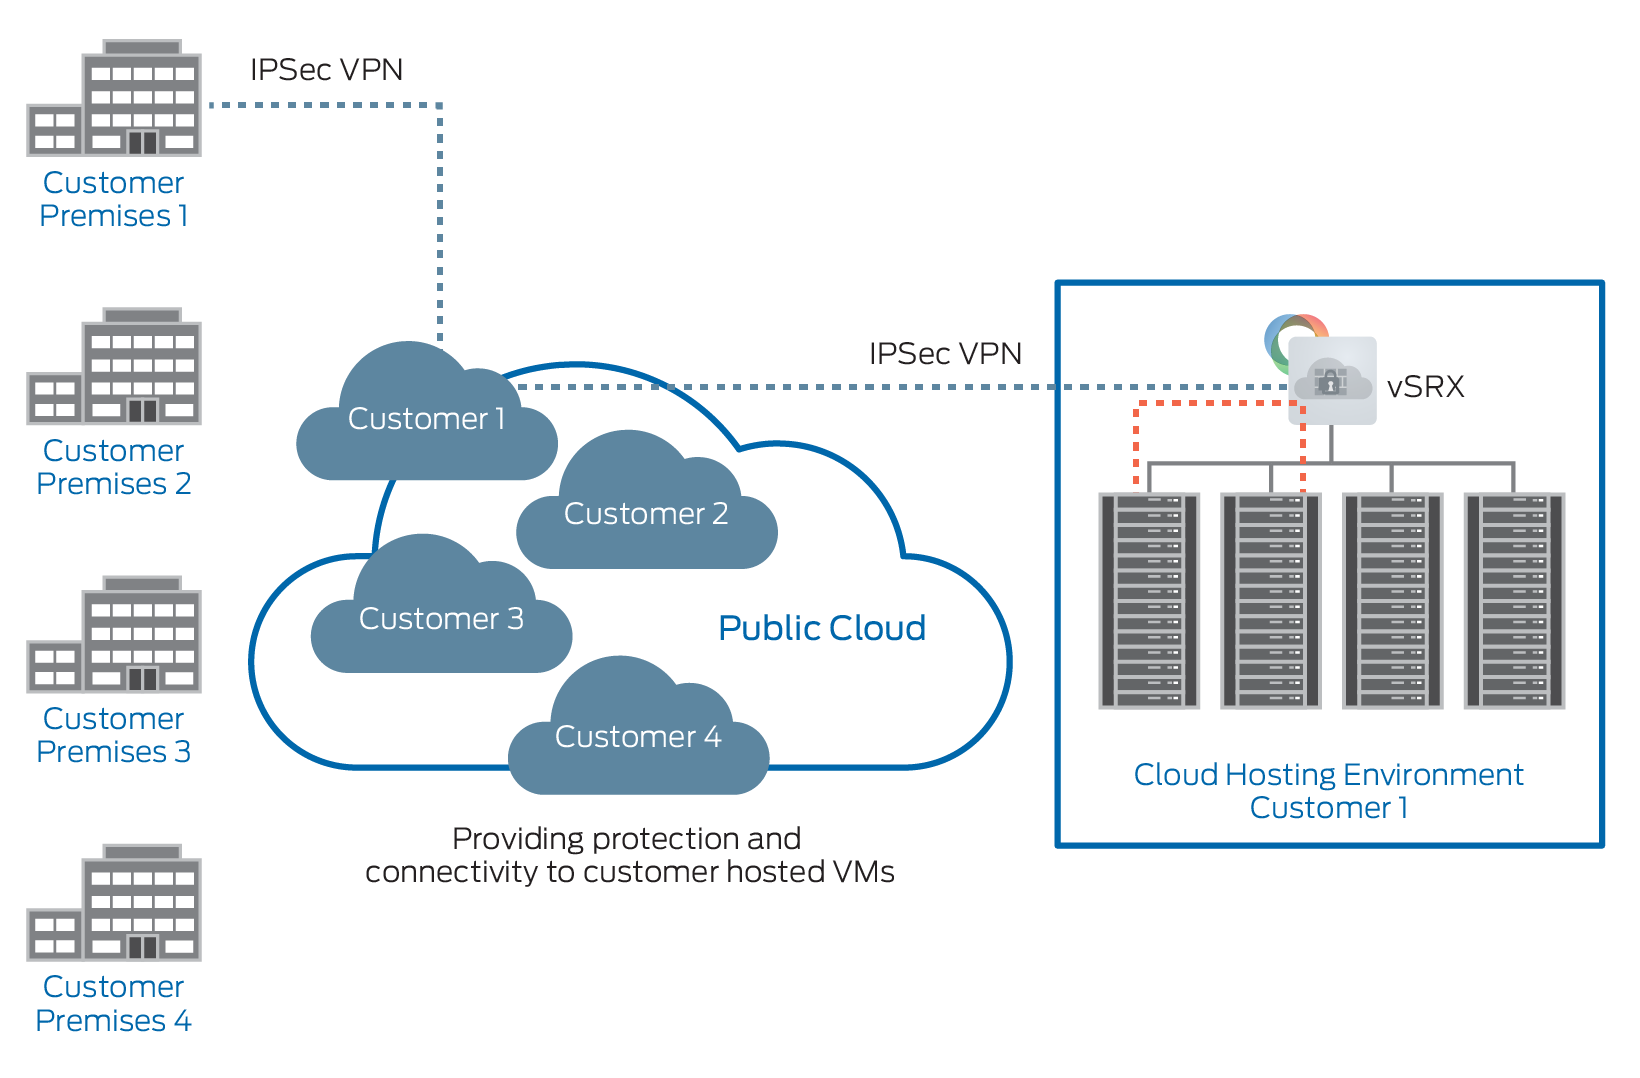 6 Public Cloud (Cloud-Hosting Providers) In the public cloud, service providers can host large numbers of VMs in some cases exceeding 50,000 for their tenant customers.